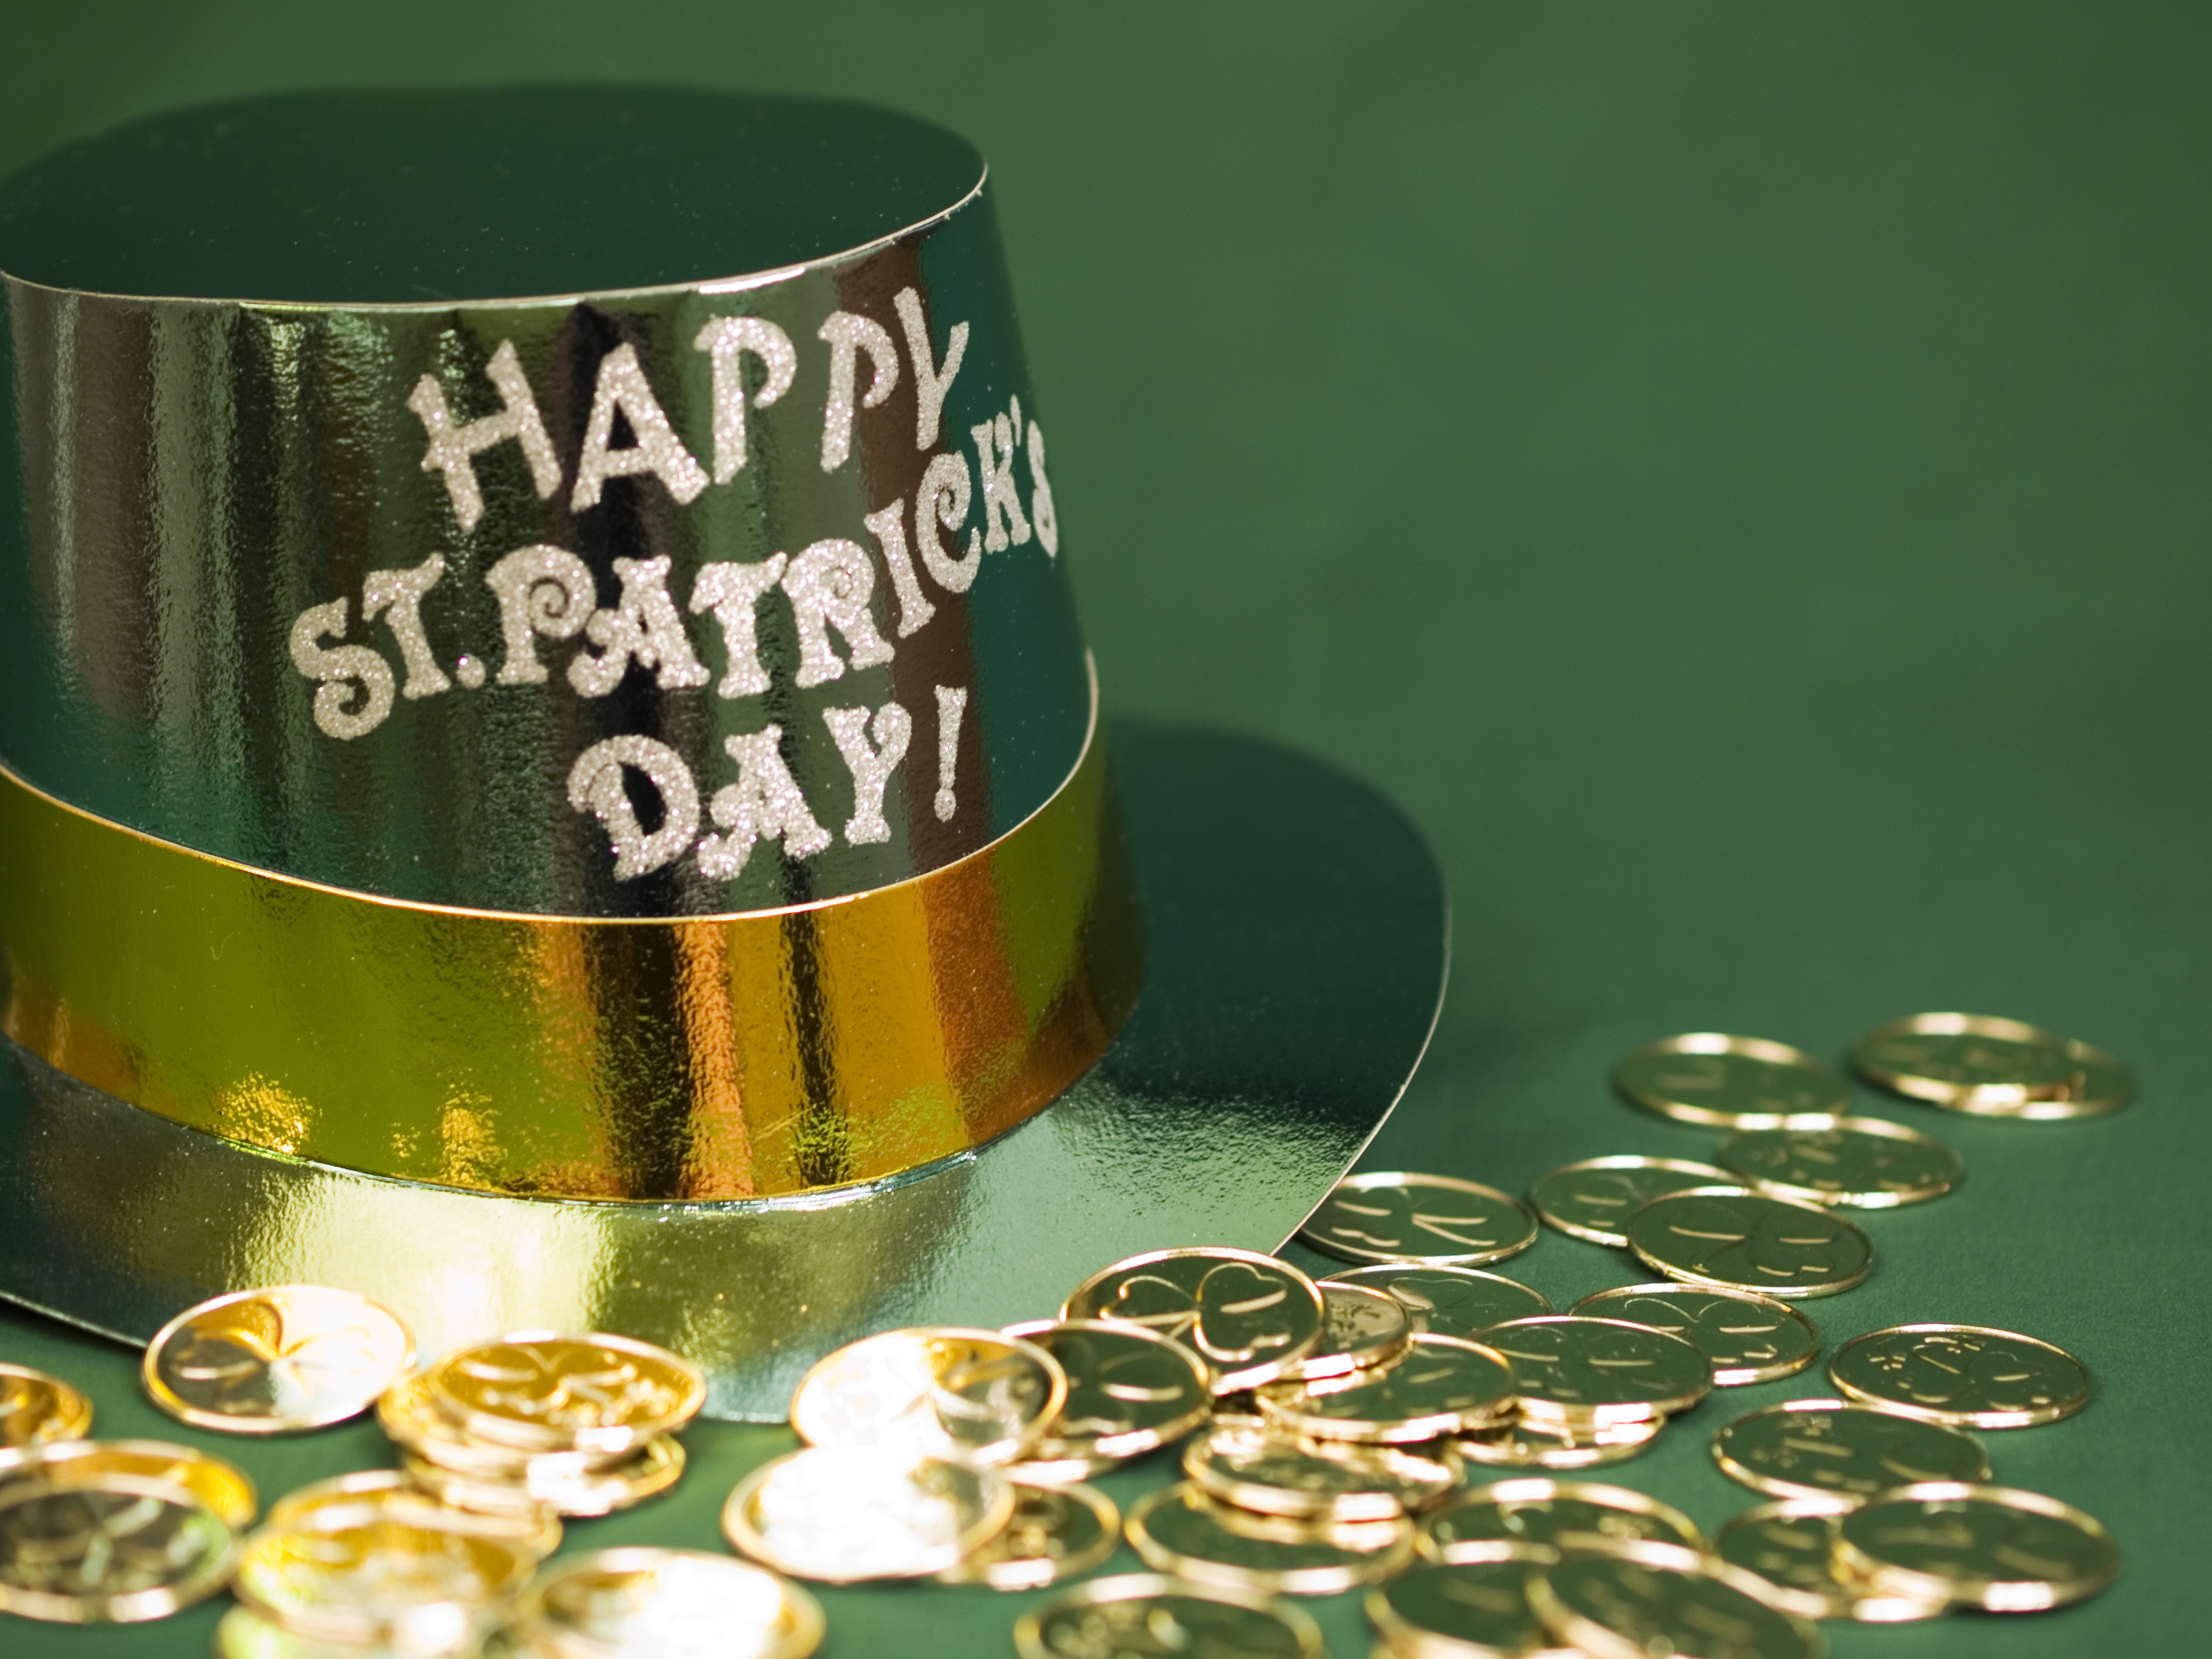 St. Patrick's Day items